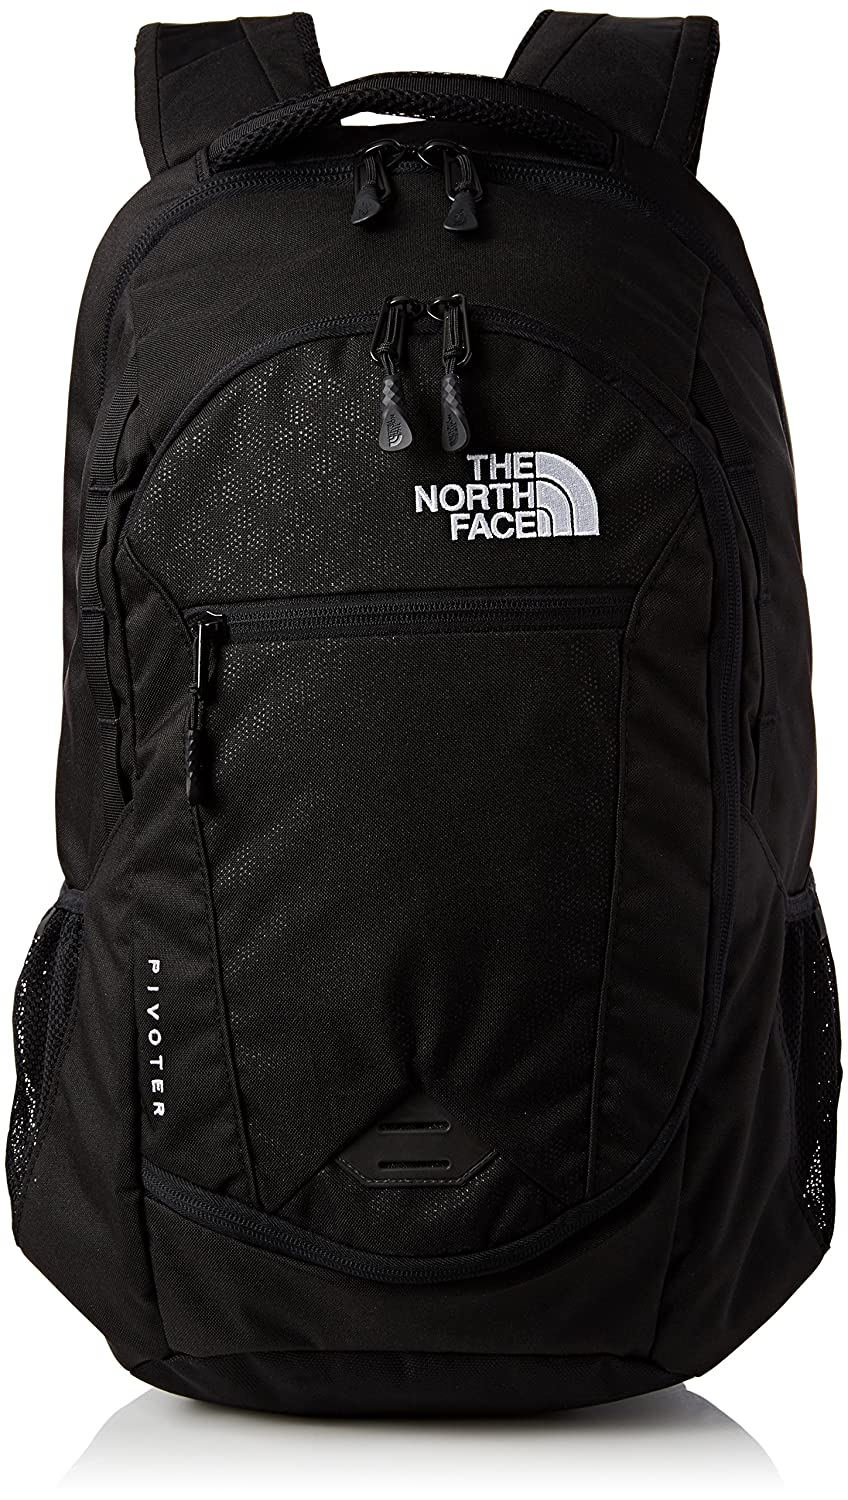 bf2776d0a17 The North Face Unisex Adult Pivoter Backpack, Black (Tnf Black), One Size:  Amazon.co.uk: Sports & Outdoors